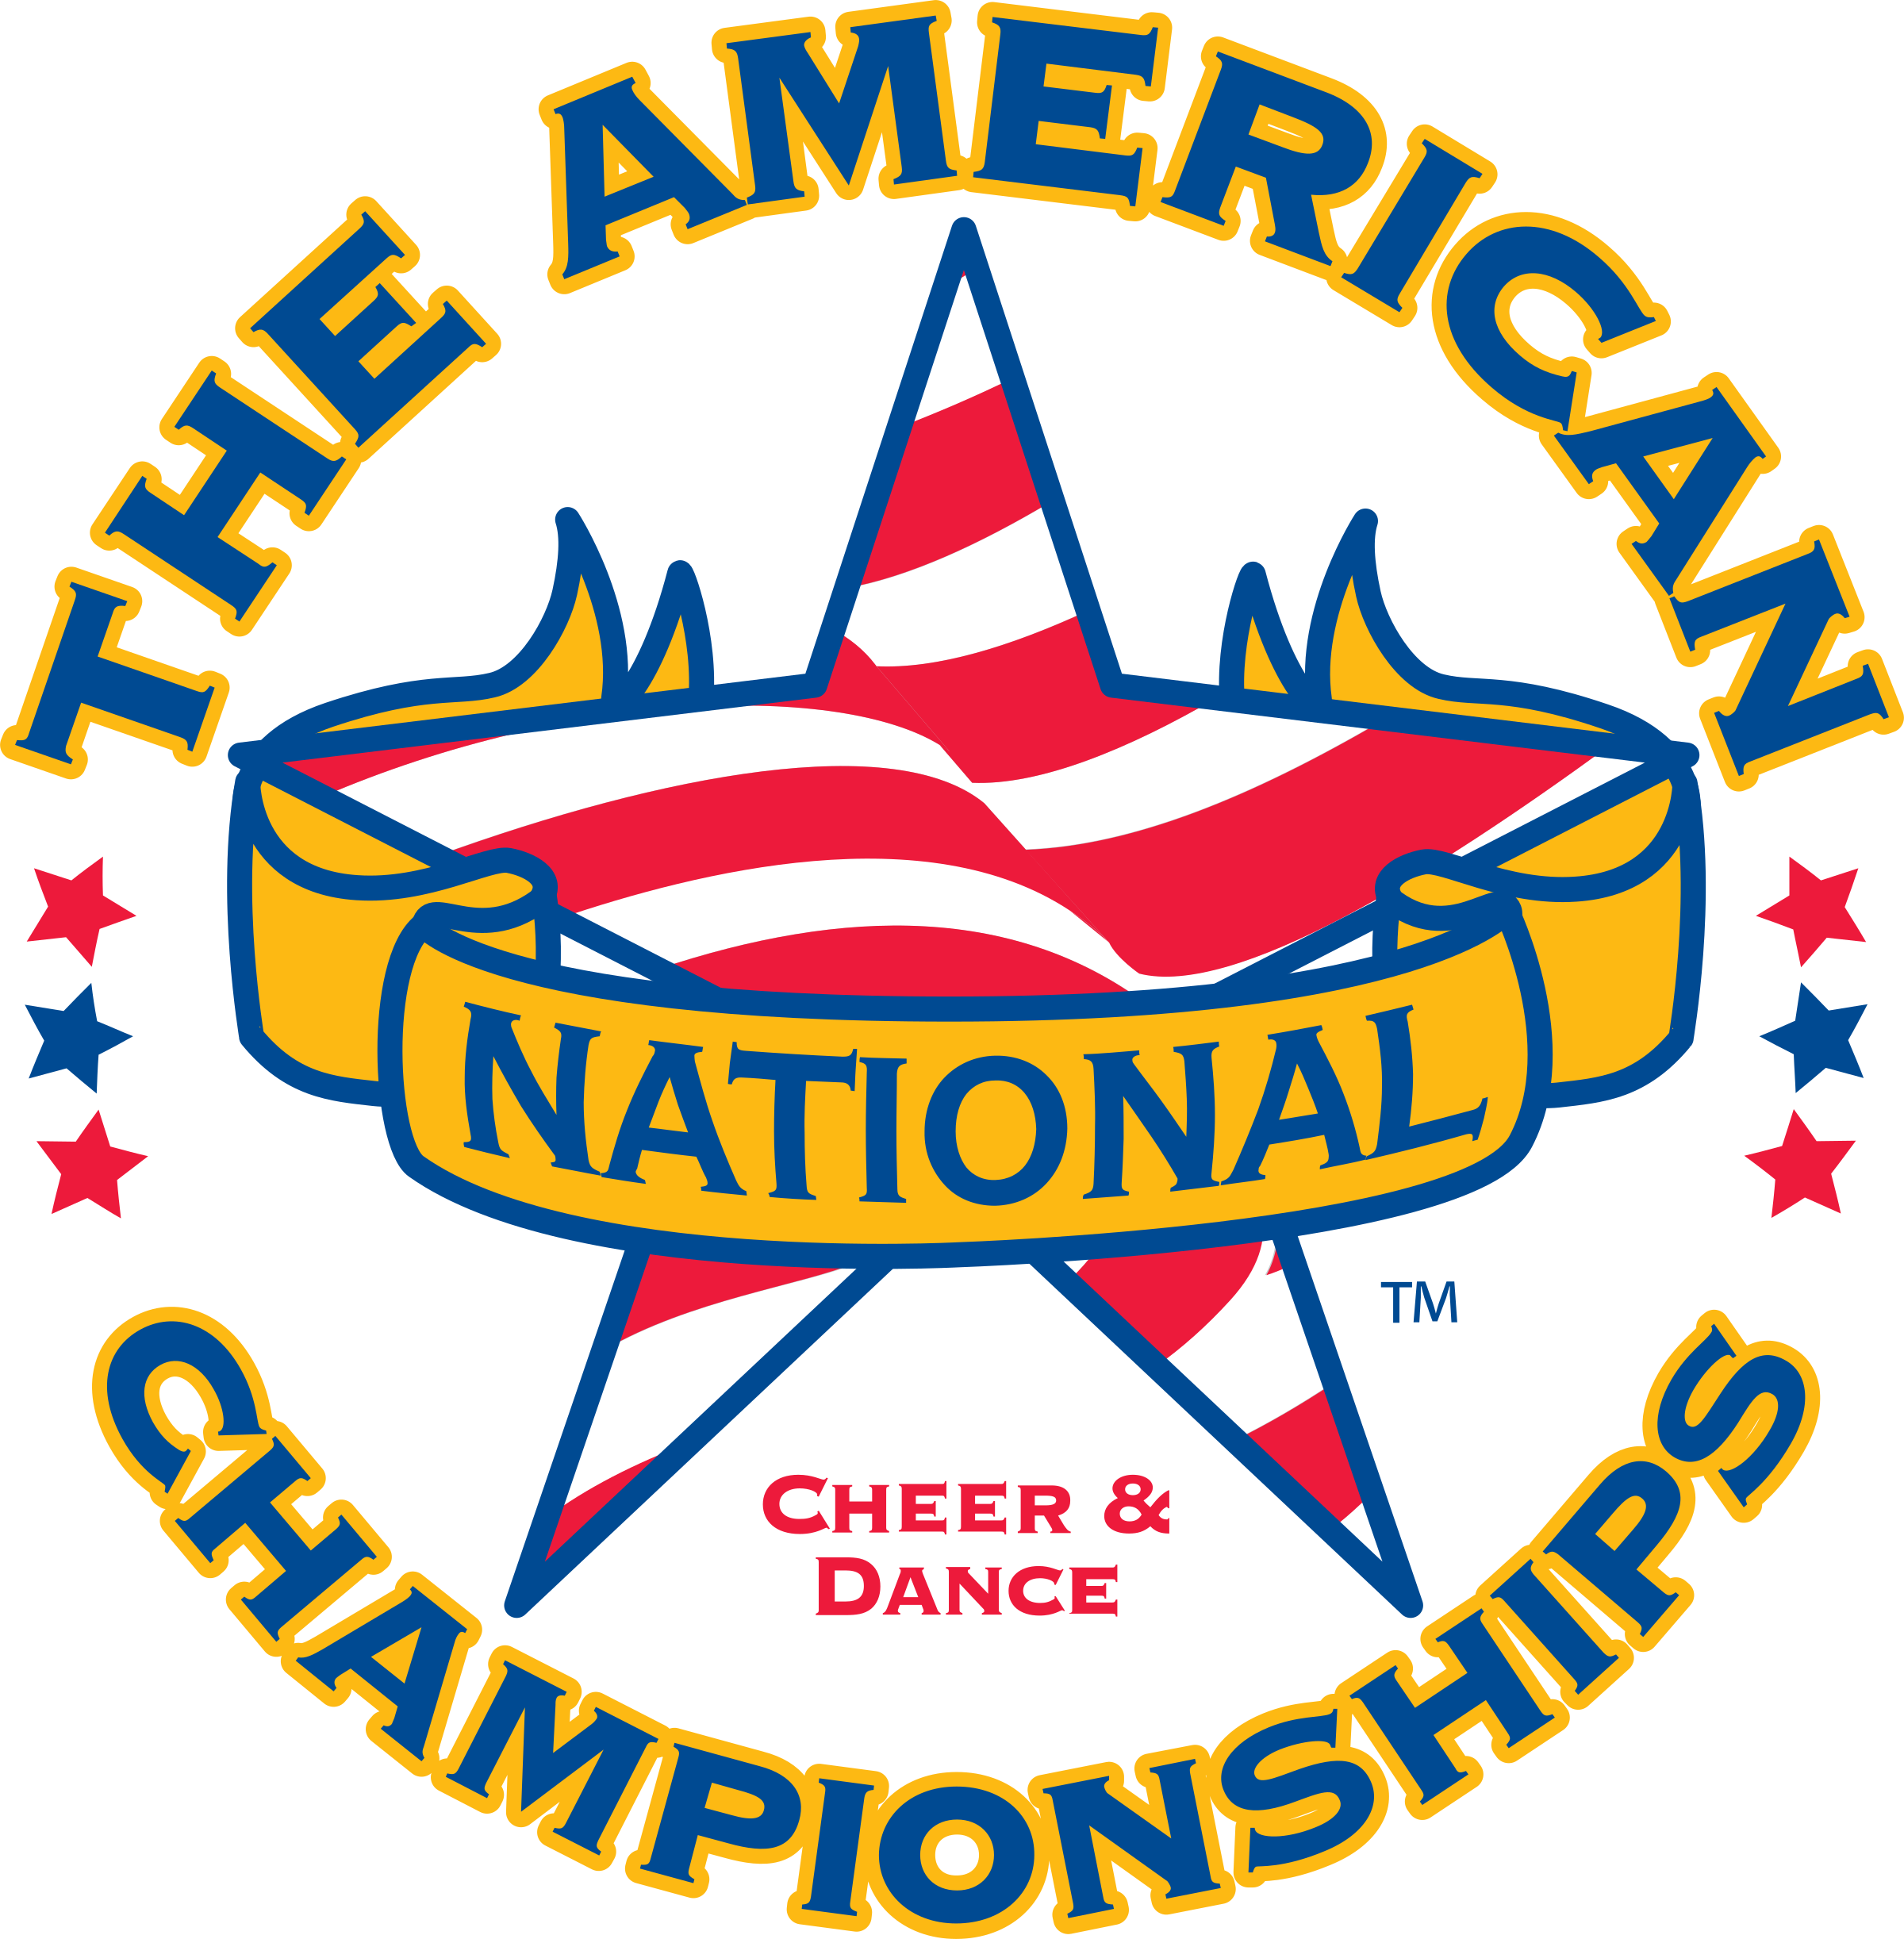 The American National Cheer & Dance Championships Logo PNG.